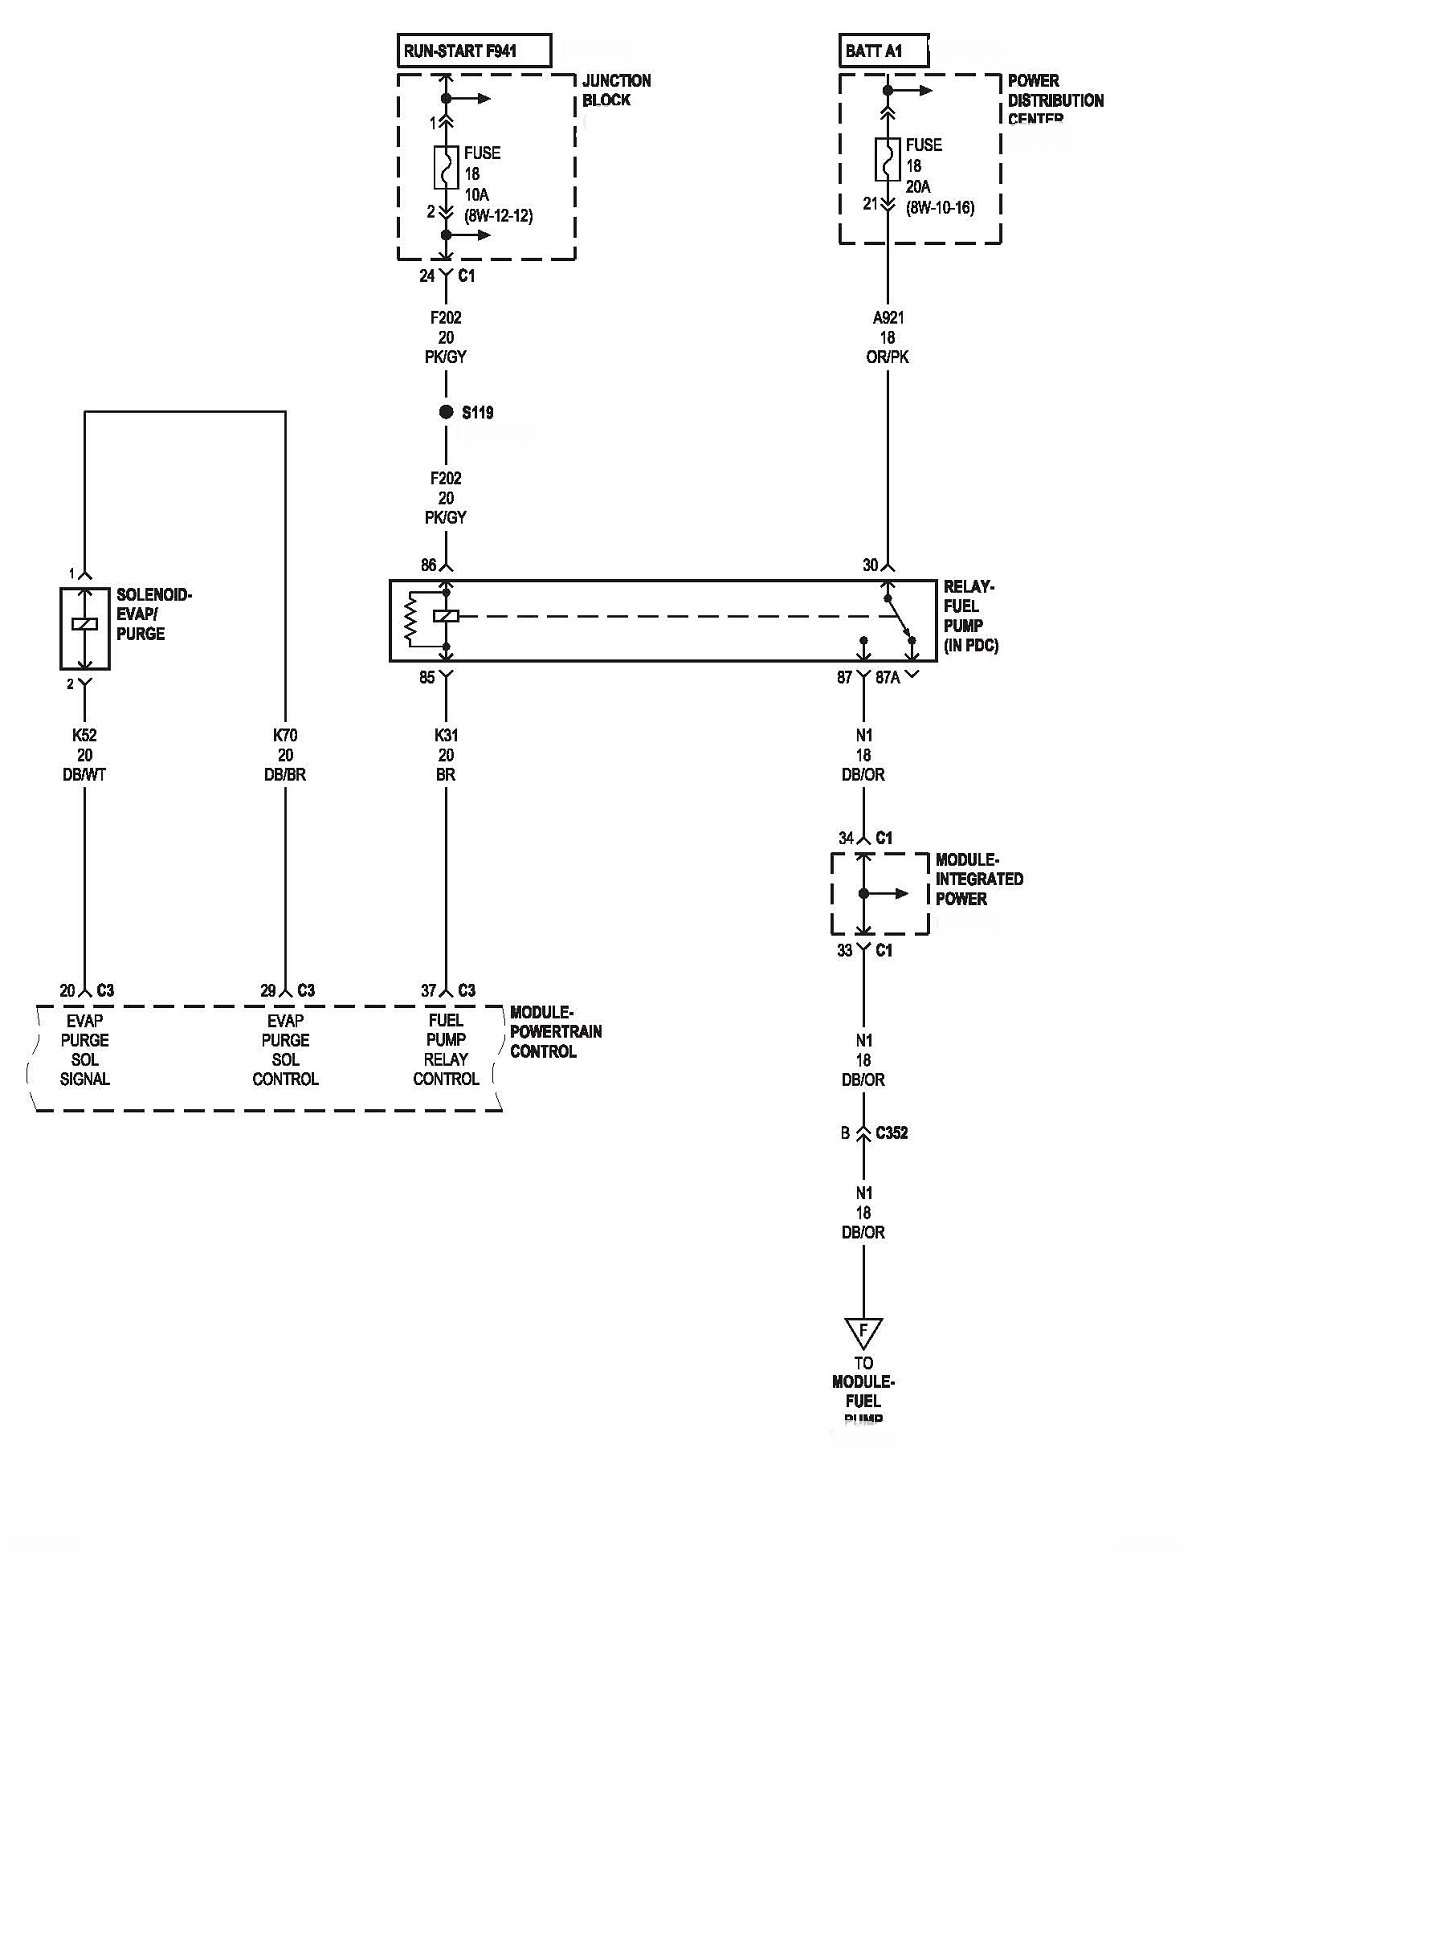 1999 Dodge Dakota Wiring Schematic Gota Wiring Diagram